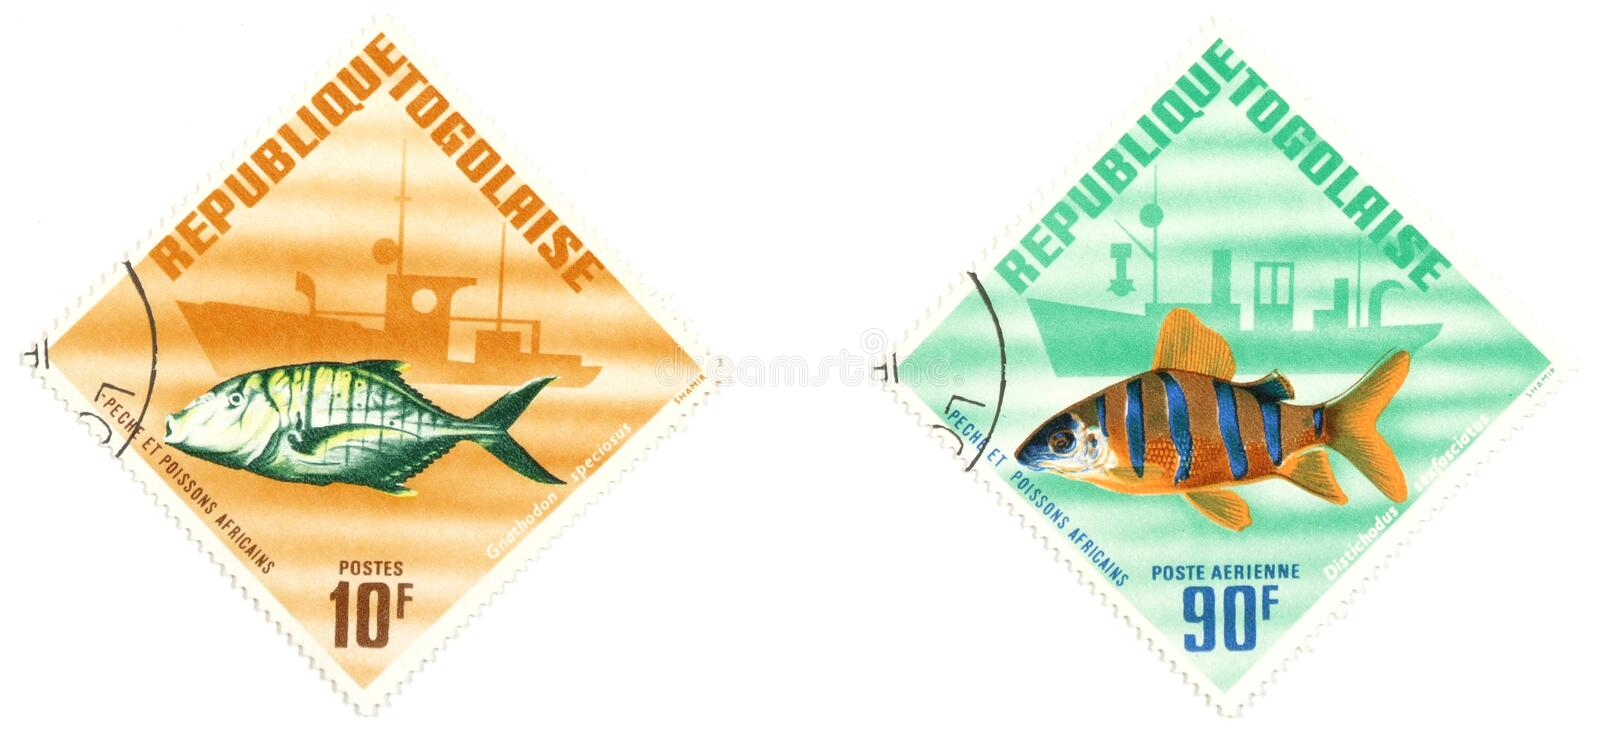 Togo. Collectible stamps from Togo. Set with exotic fish royalty free stock photos